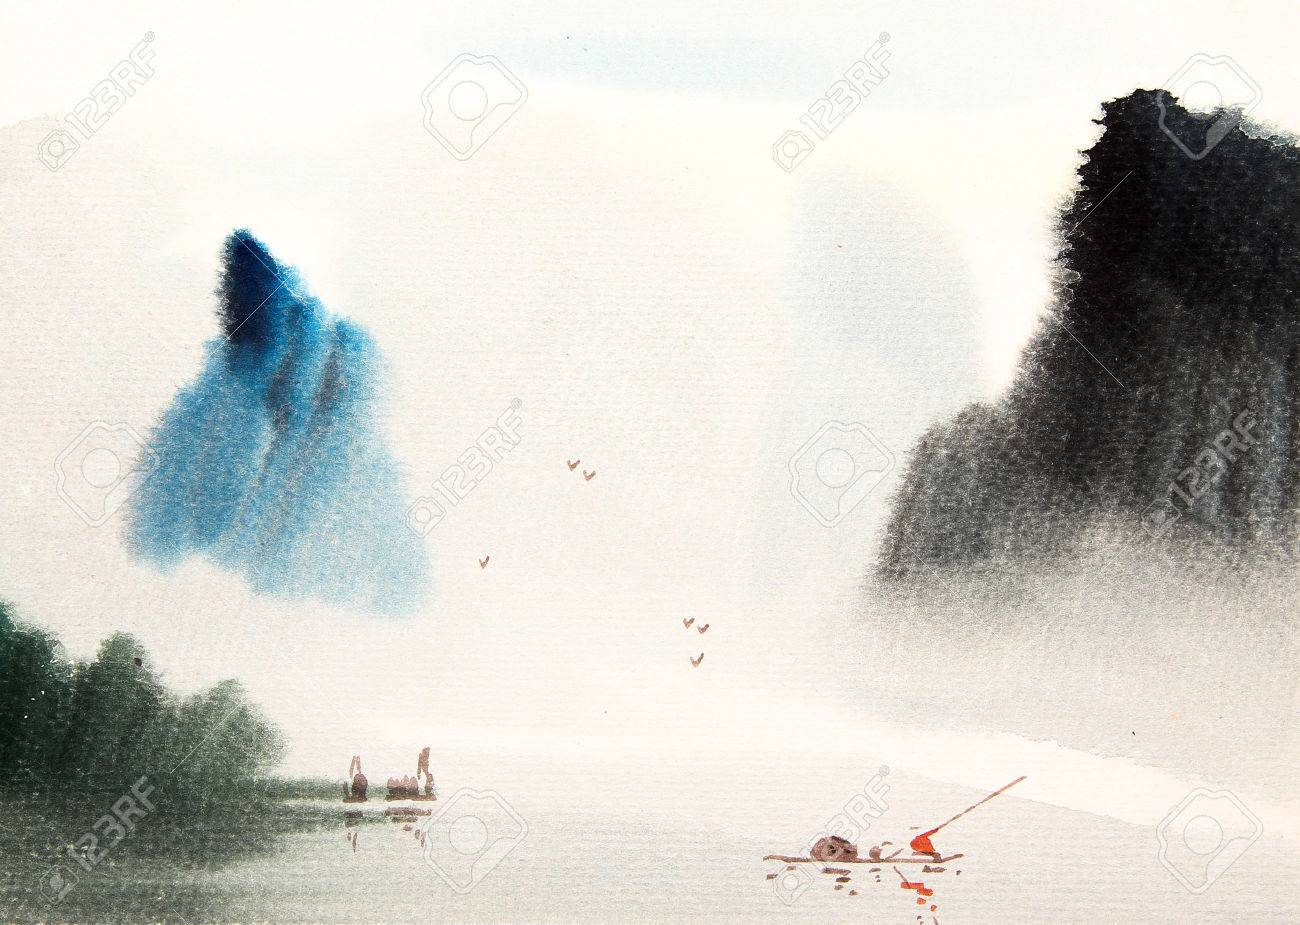 Chinese Landscape Watercolor Painting Stock Photo